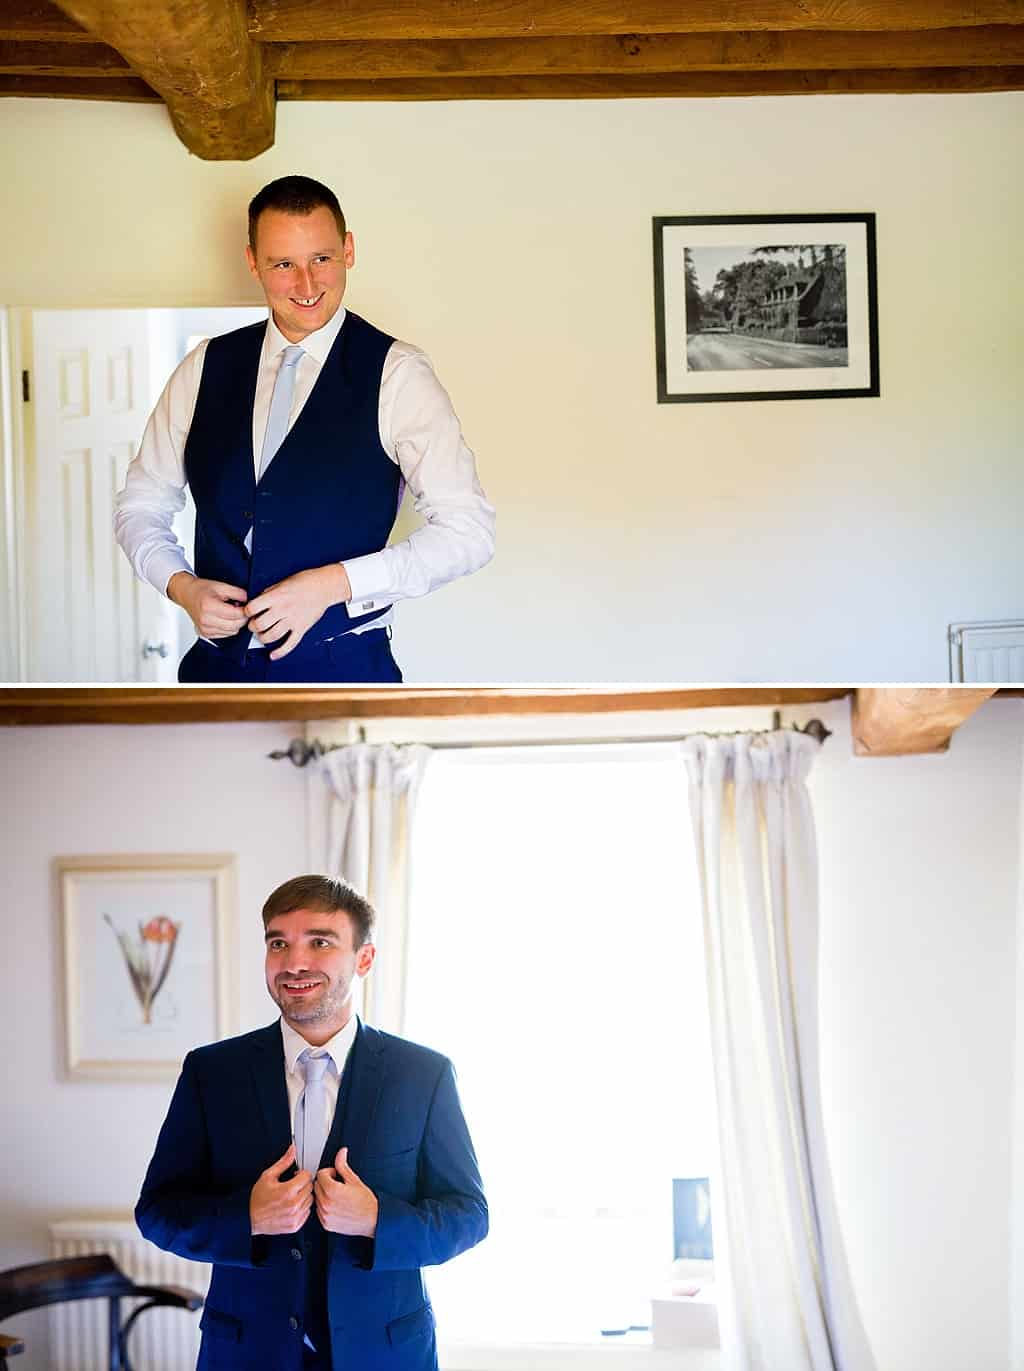 Groom party getting ready in blue suits